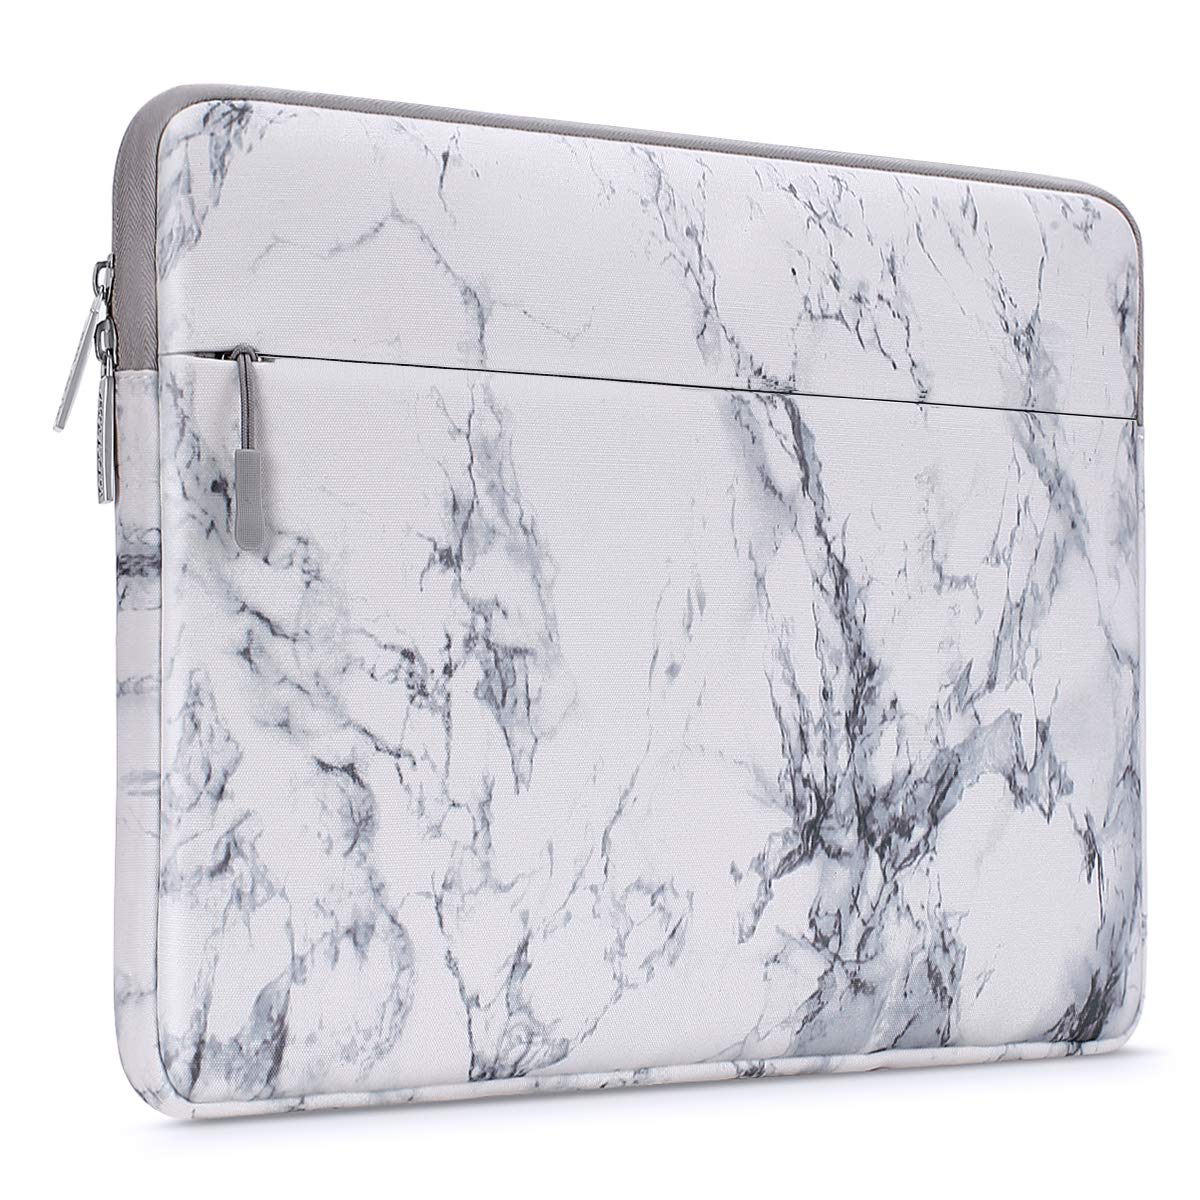 MOSISO Laptop Sleeve Bag Compatible 13-13.3 Inch MacBook Pro, MacBook Air, Notebook Computer with Accessory Pocket, Ultraportable Protective Canvas Marble Pattern Carrying Case Cover, White